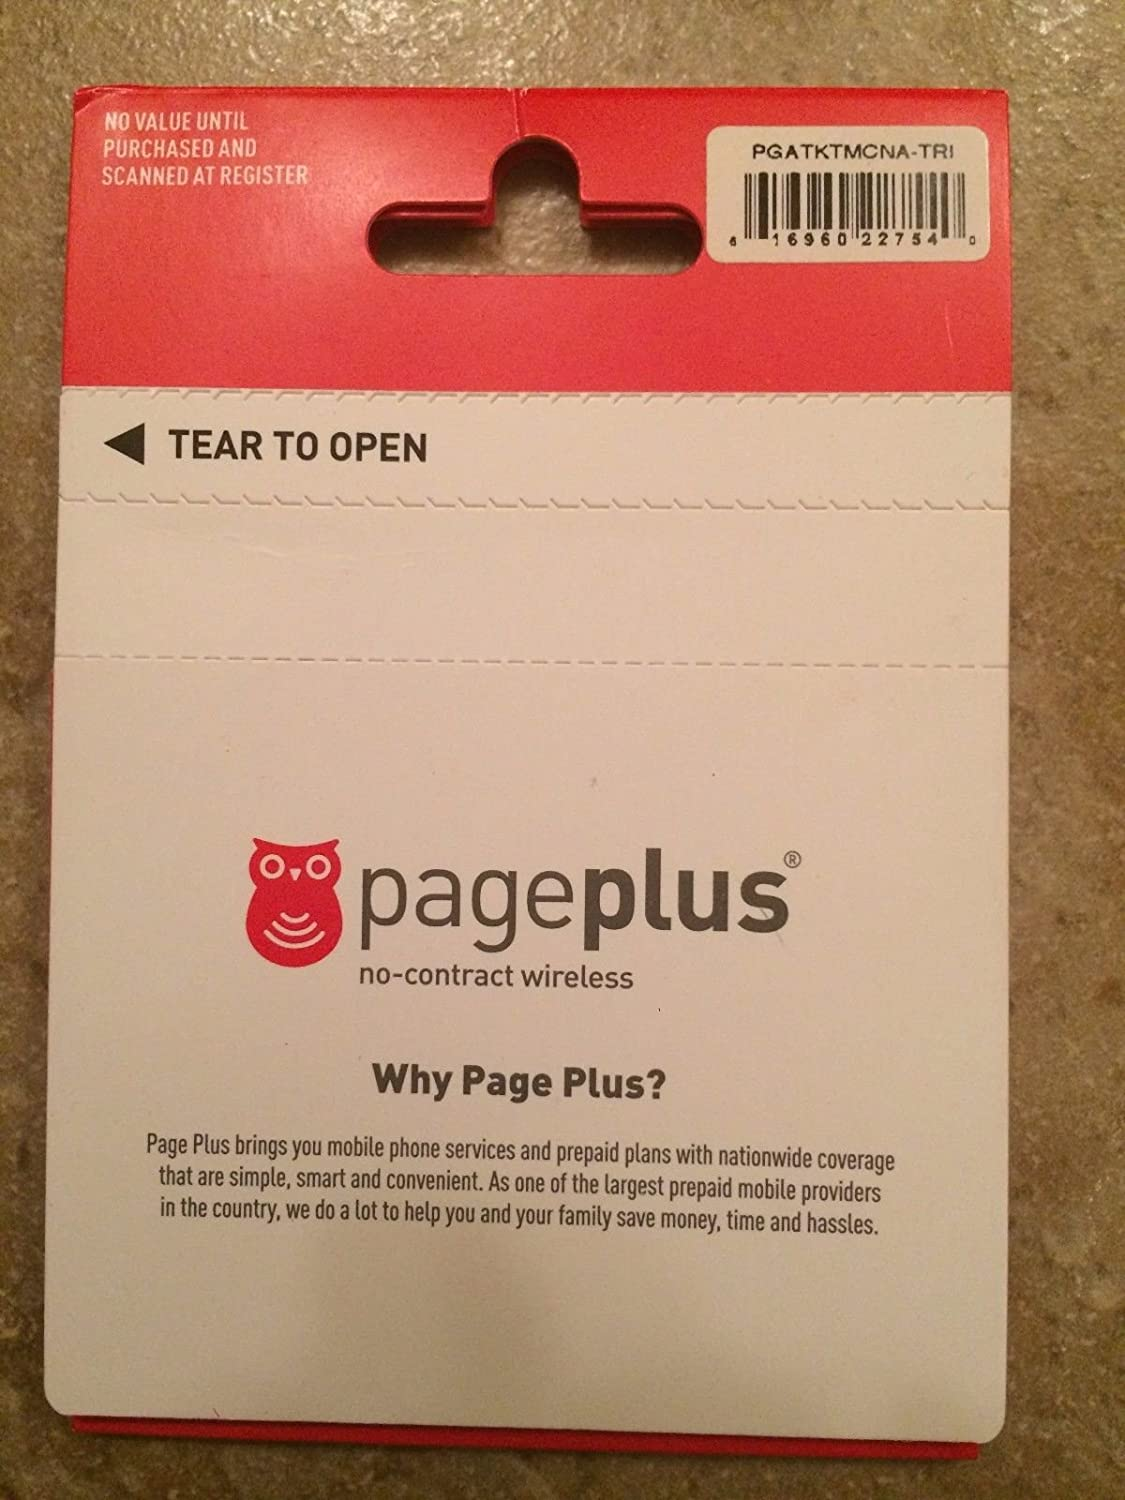 Page Plus Cellular information and highlights